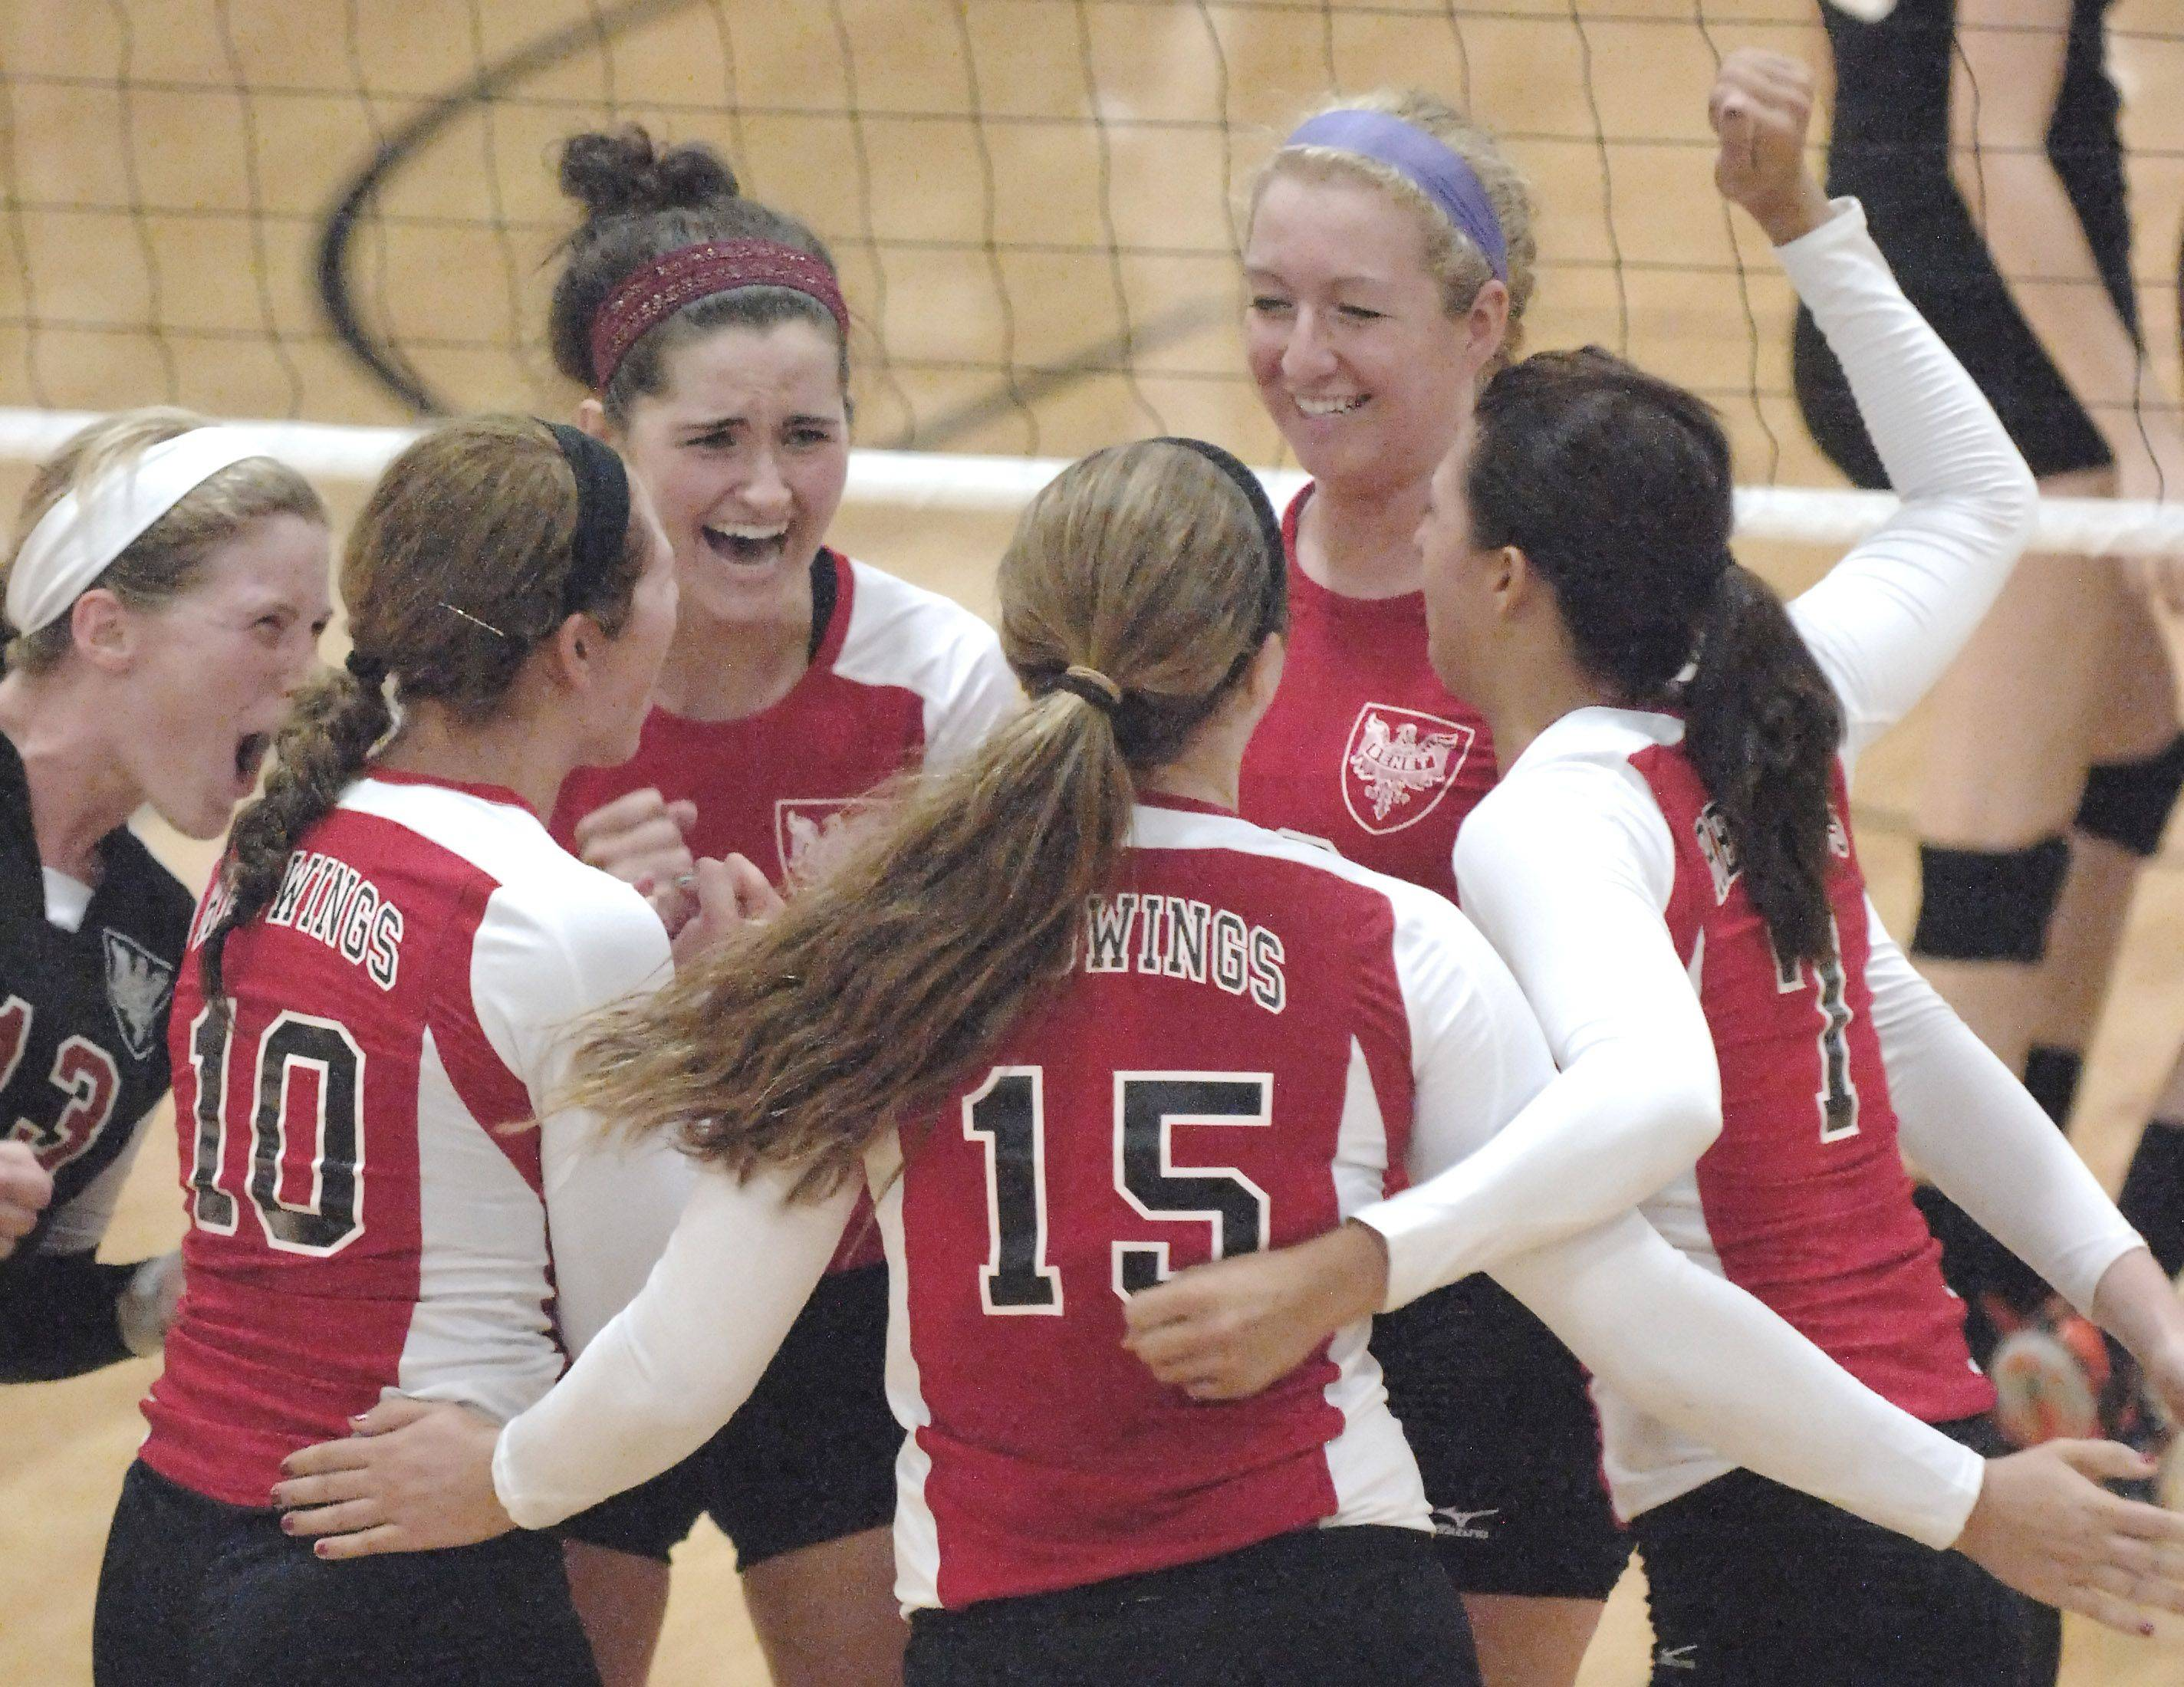 Benet Academy's Nora Young, left, and Meghan Haggerty (both facing) celebrate their two game win over St. Charles East's on Tuesday, August 23. 16 20